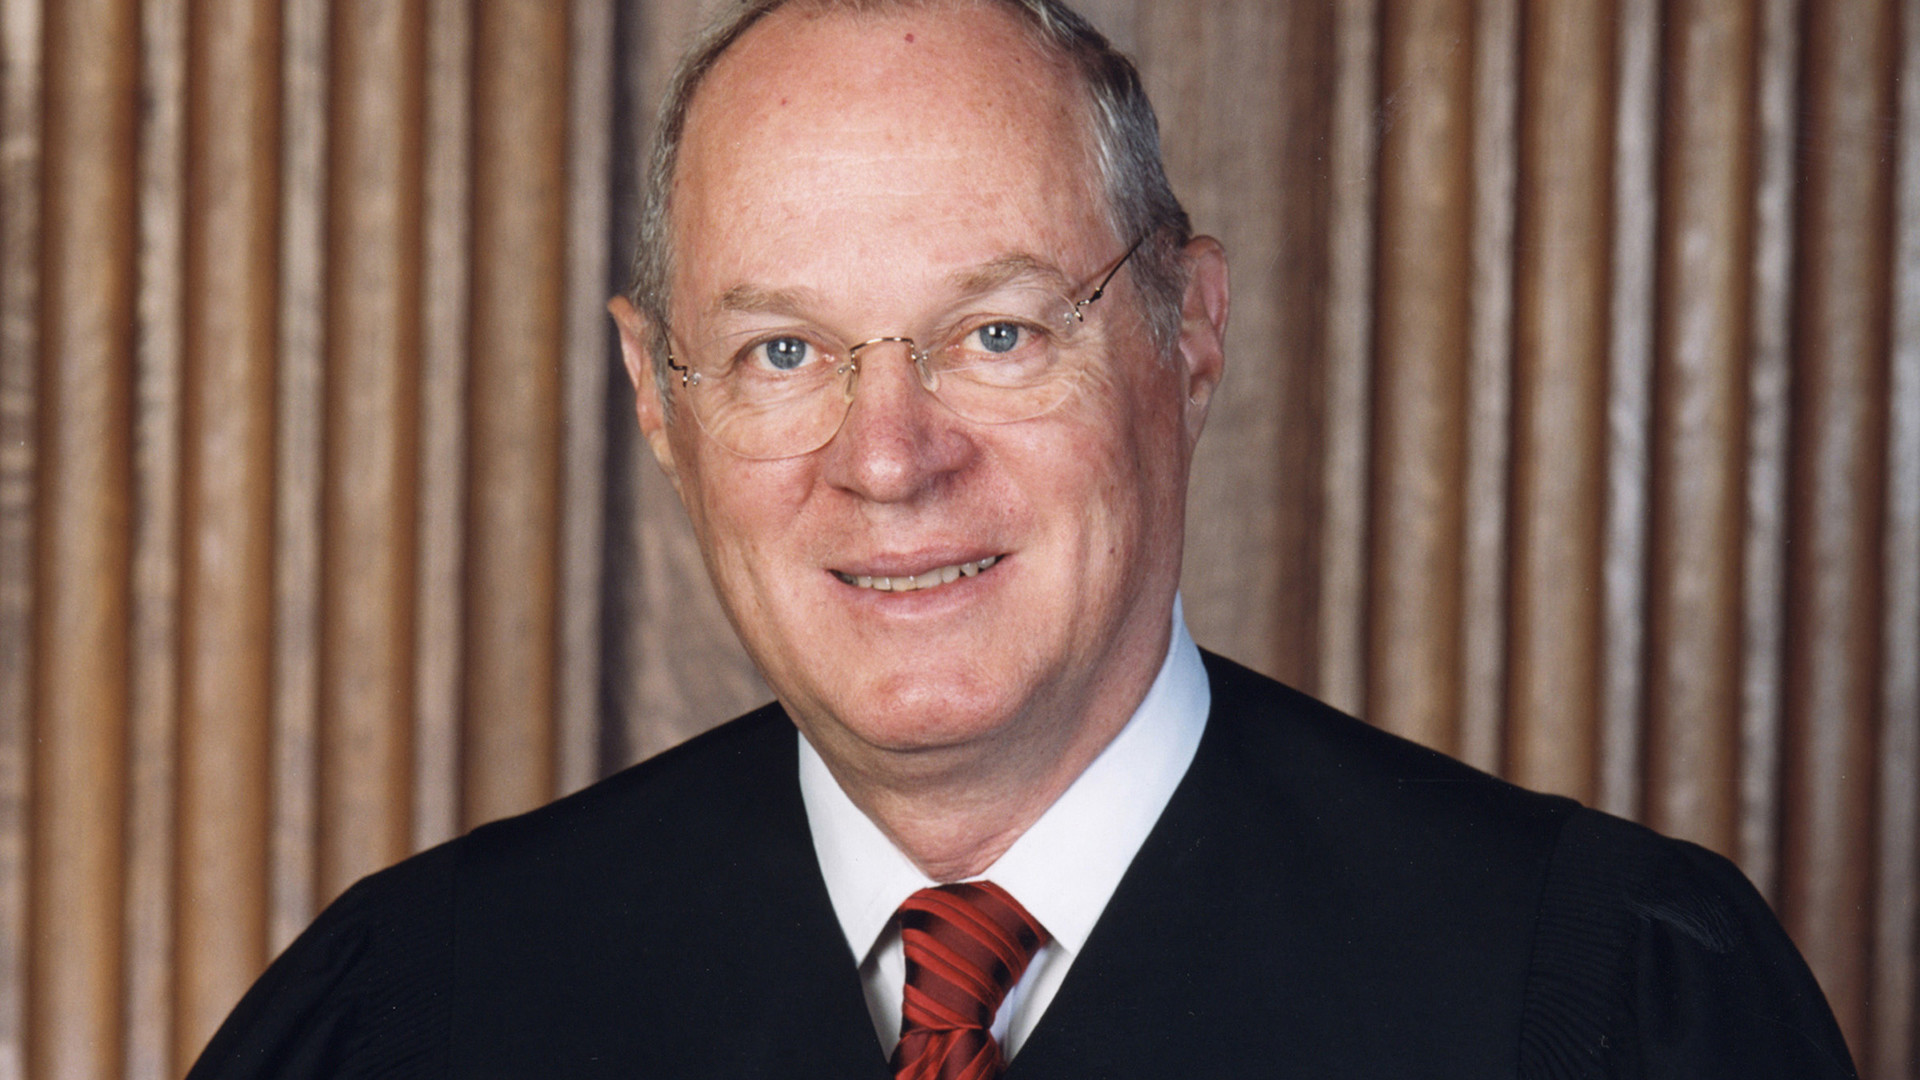 justice anthony kennedy retires allowing trump to replace pivotal